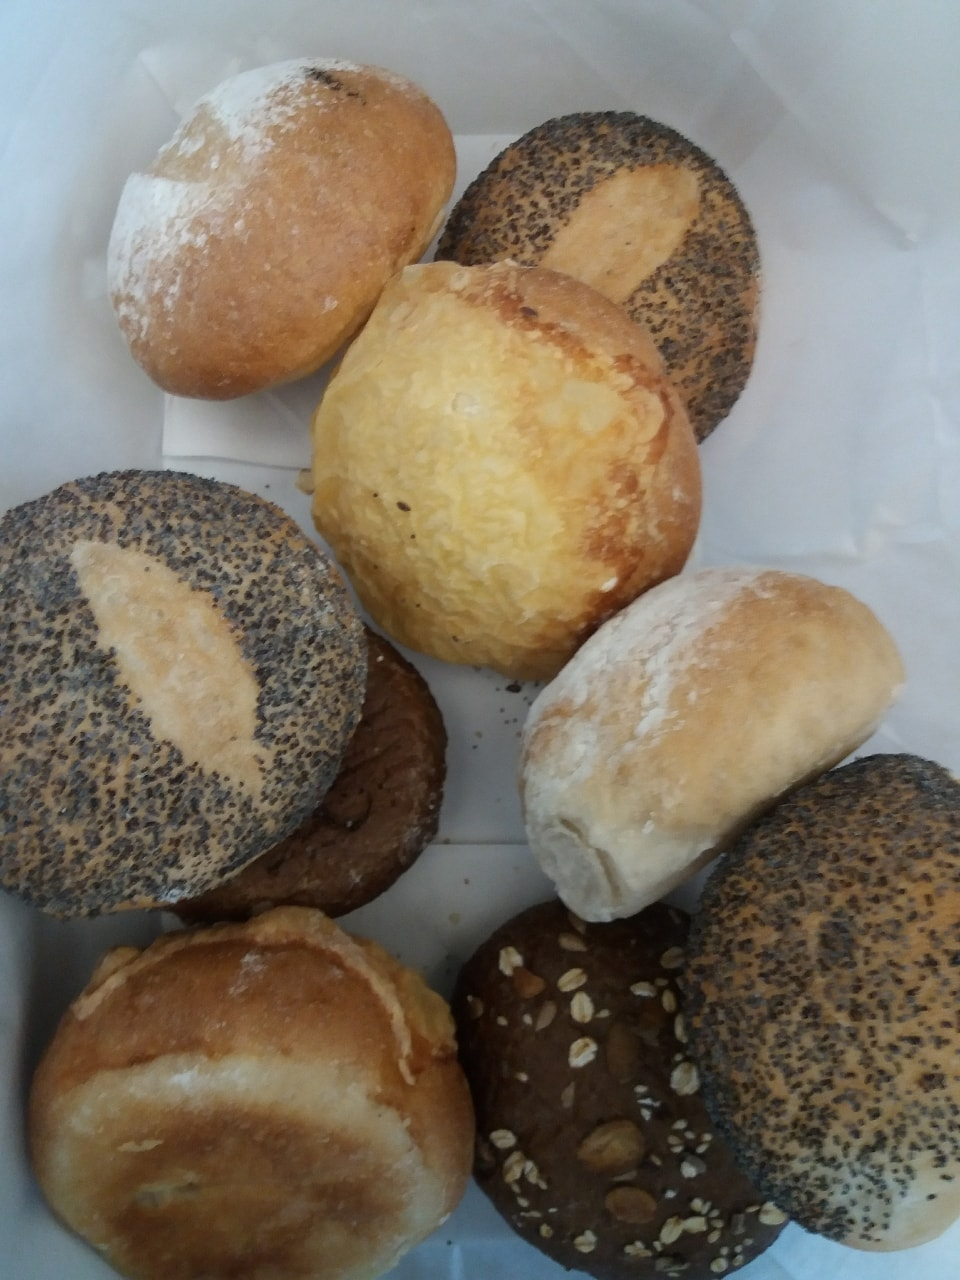 3x Bread buns from Pesso Bageri